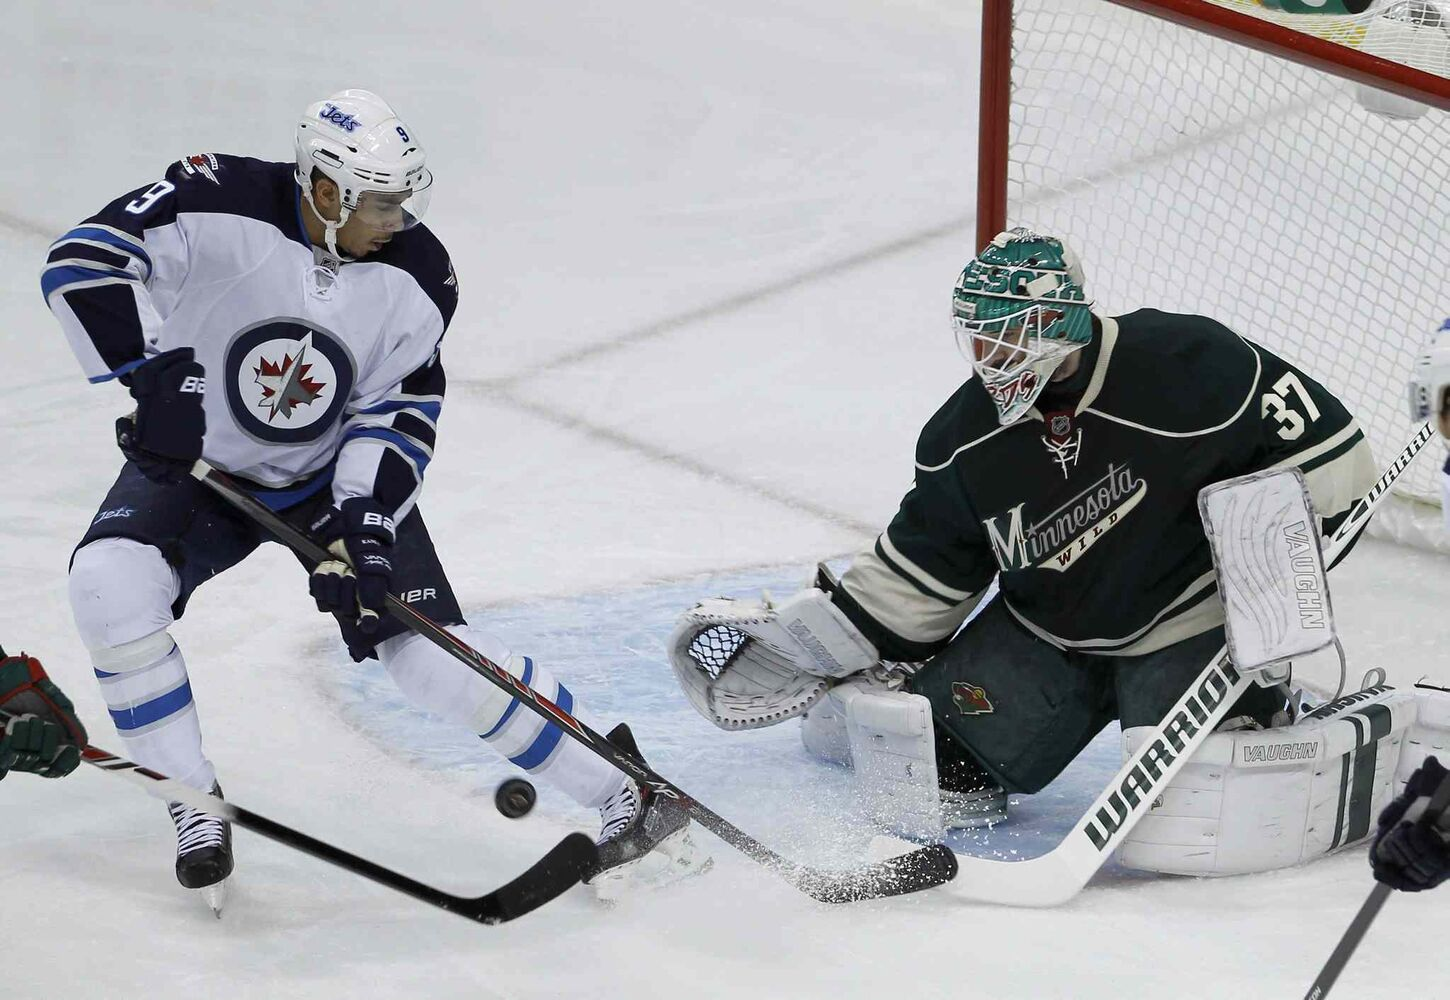 Minnesota Wild goalie Josh Harding (right) deflects a shot by Winnipeg Jets winger Evander Kane during the first period. (Ann Heisenfelt / The Associated Press)